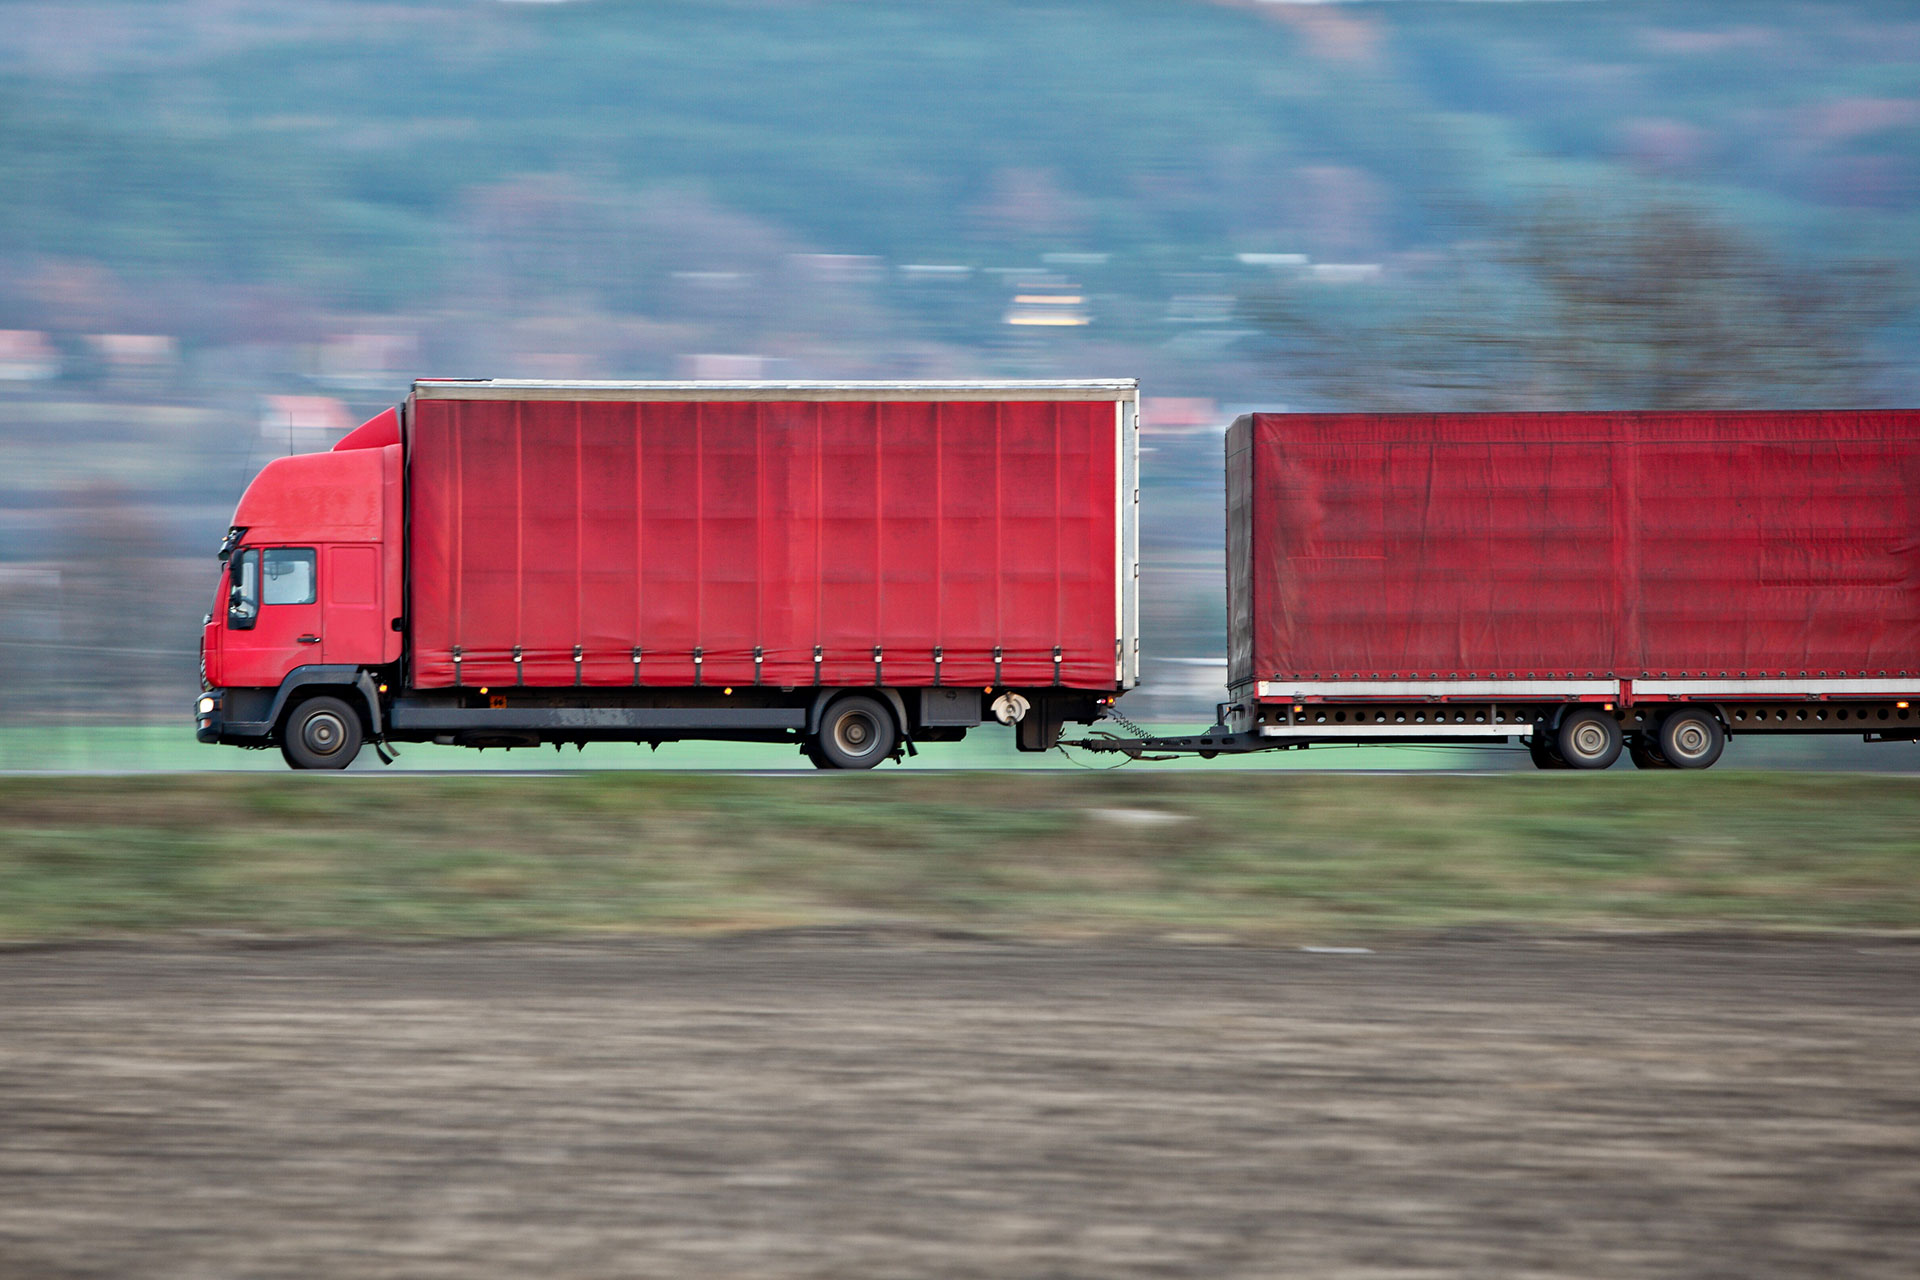 red-camion-truck-goes-fast-on-a-road-panned-image-PUSS5ML